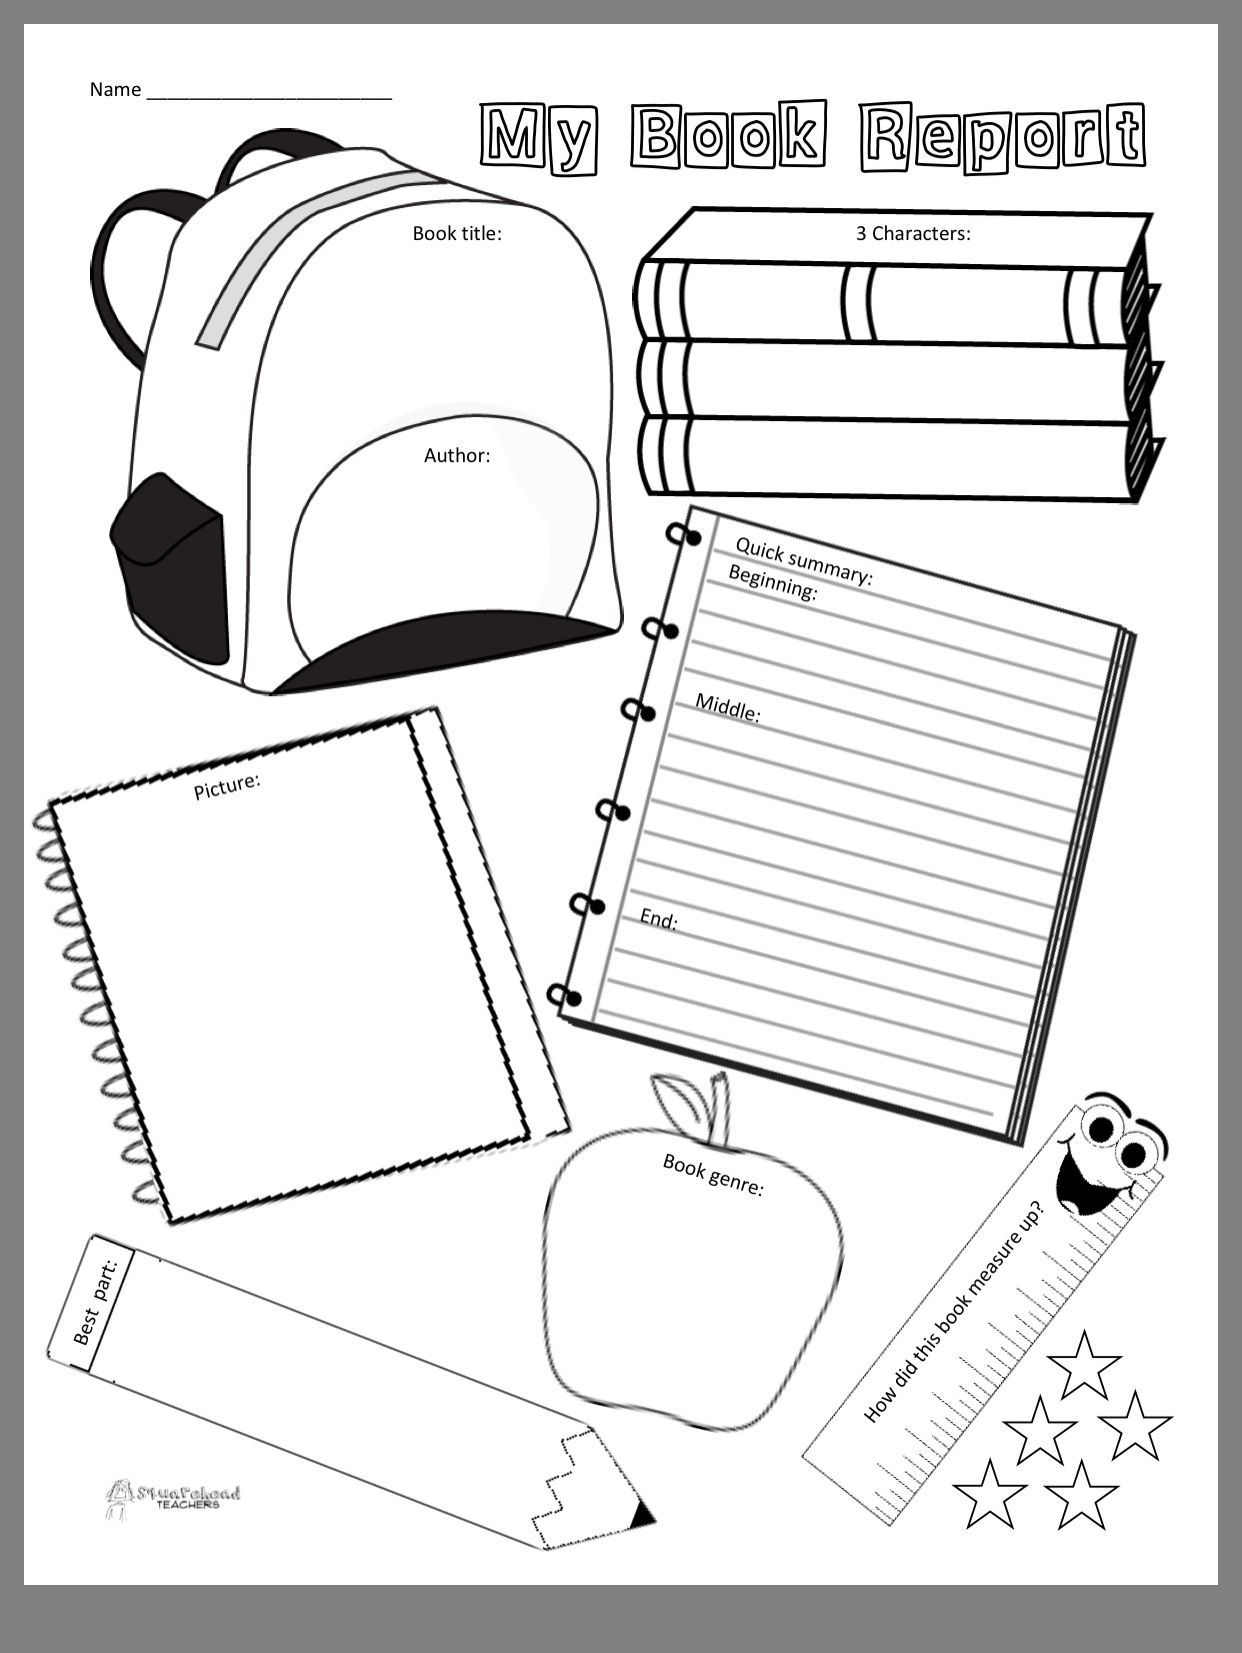 001 Formidable Free Printable Book Report Template For 6th Grade Image Full